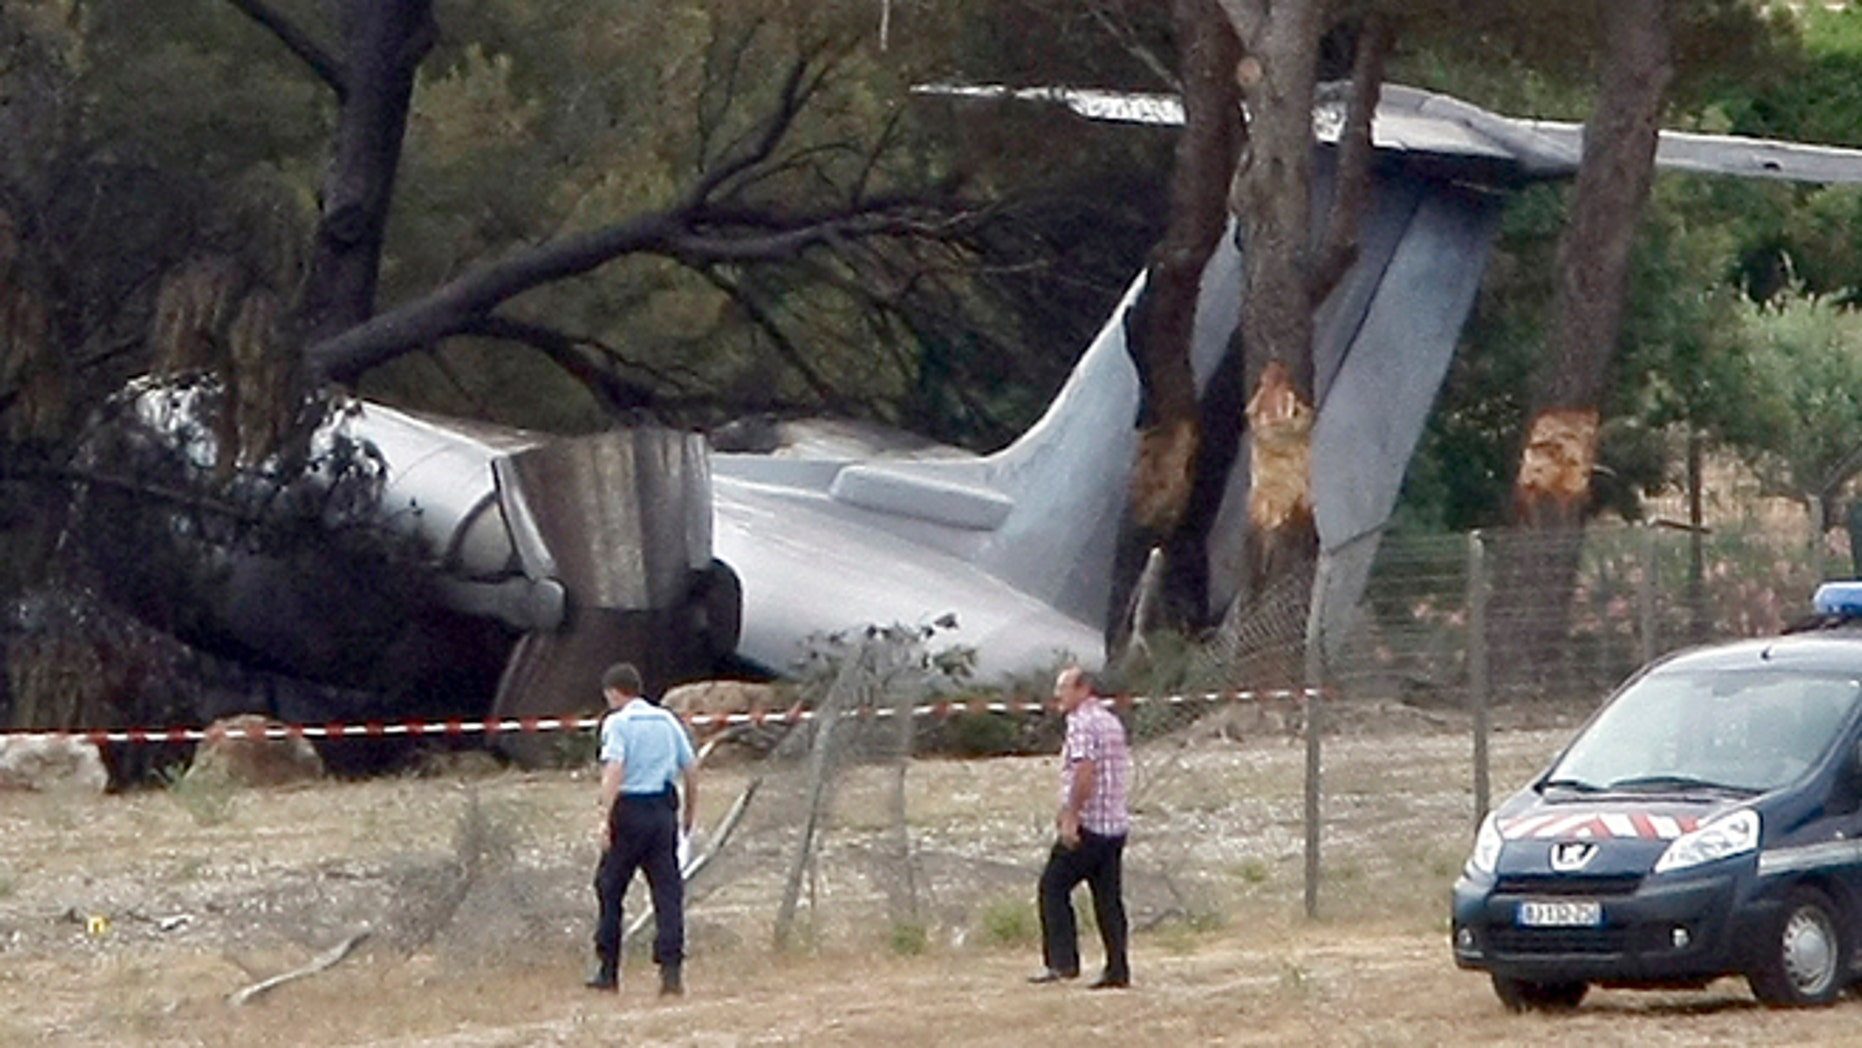 July 13: Police Officers walk near the plane that crashed on landing at Le Castellet airport, near Toulon, southern France.